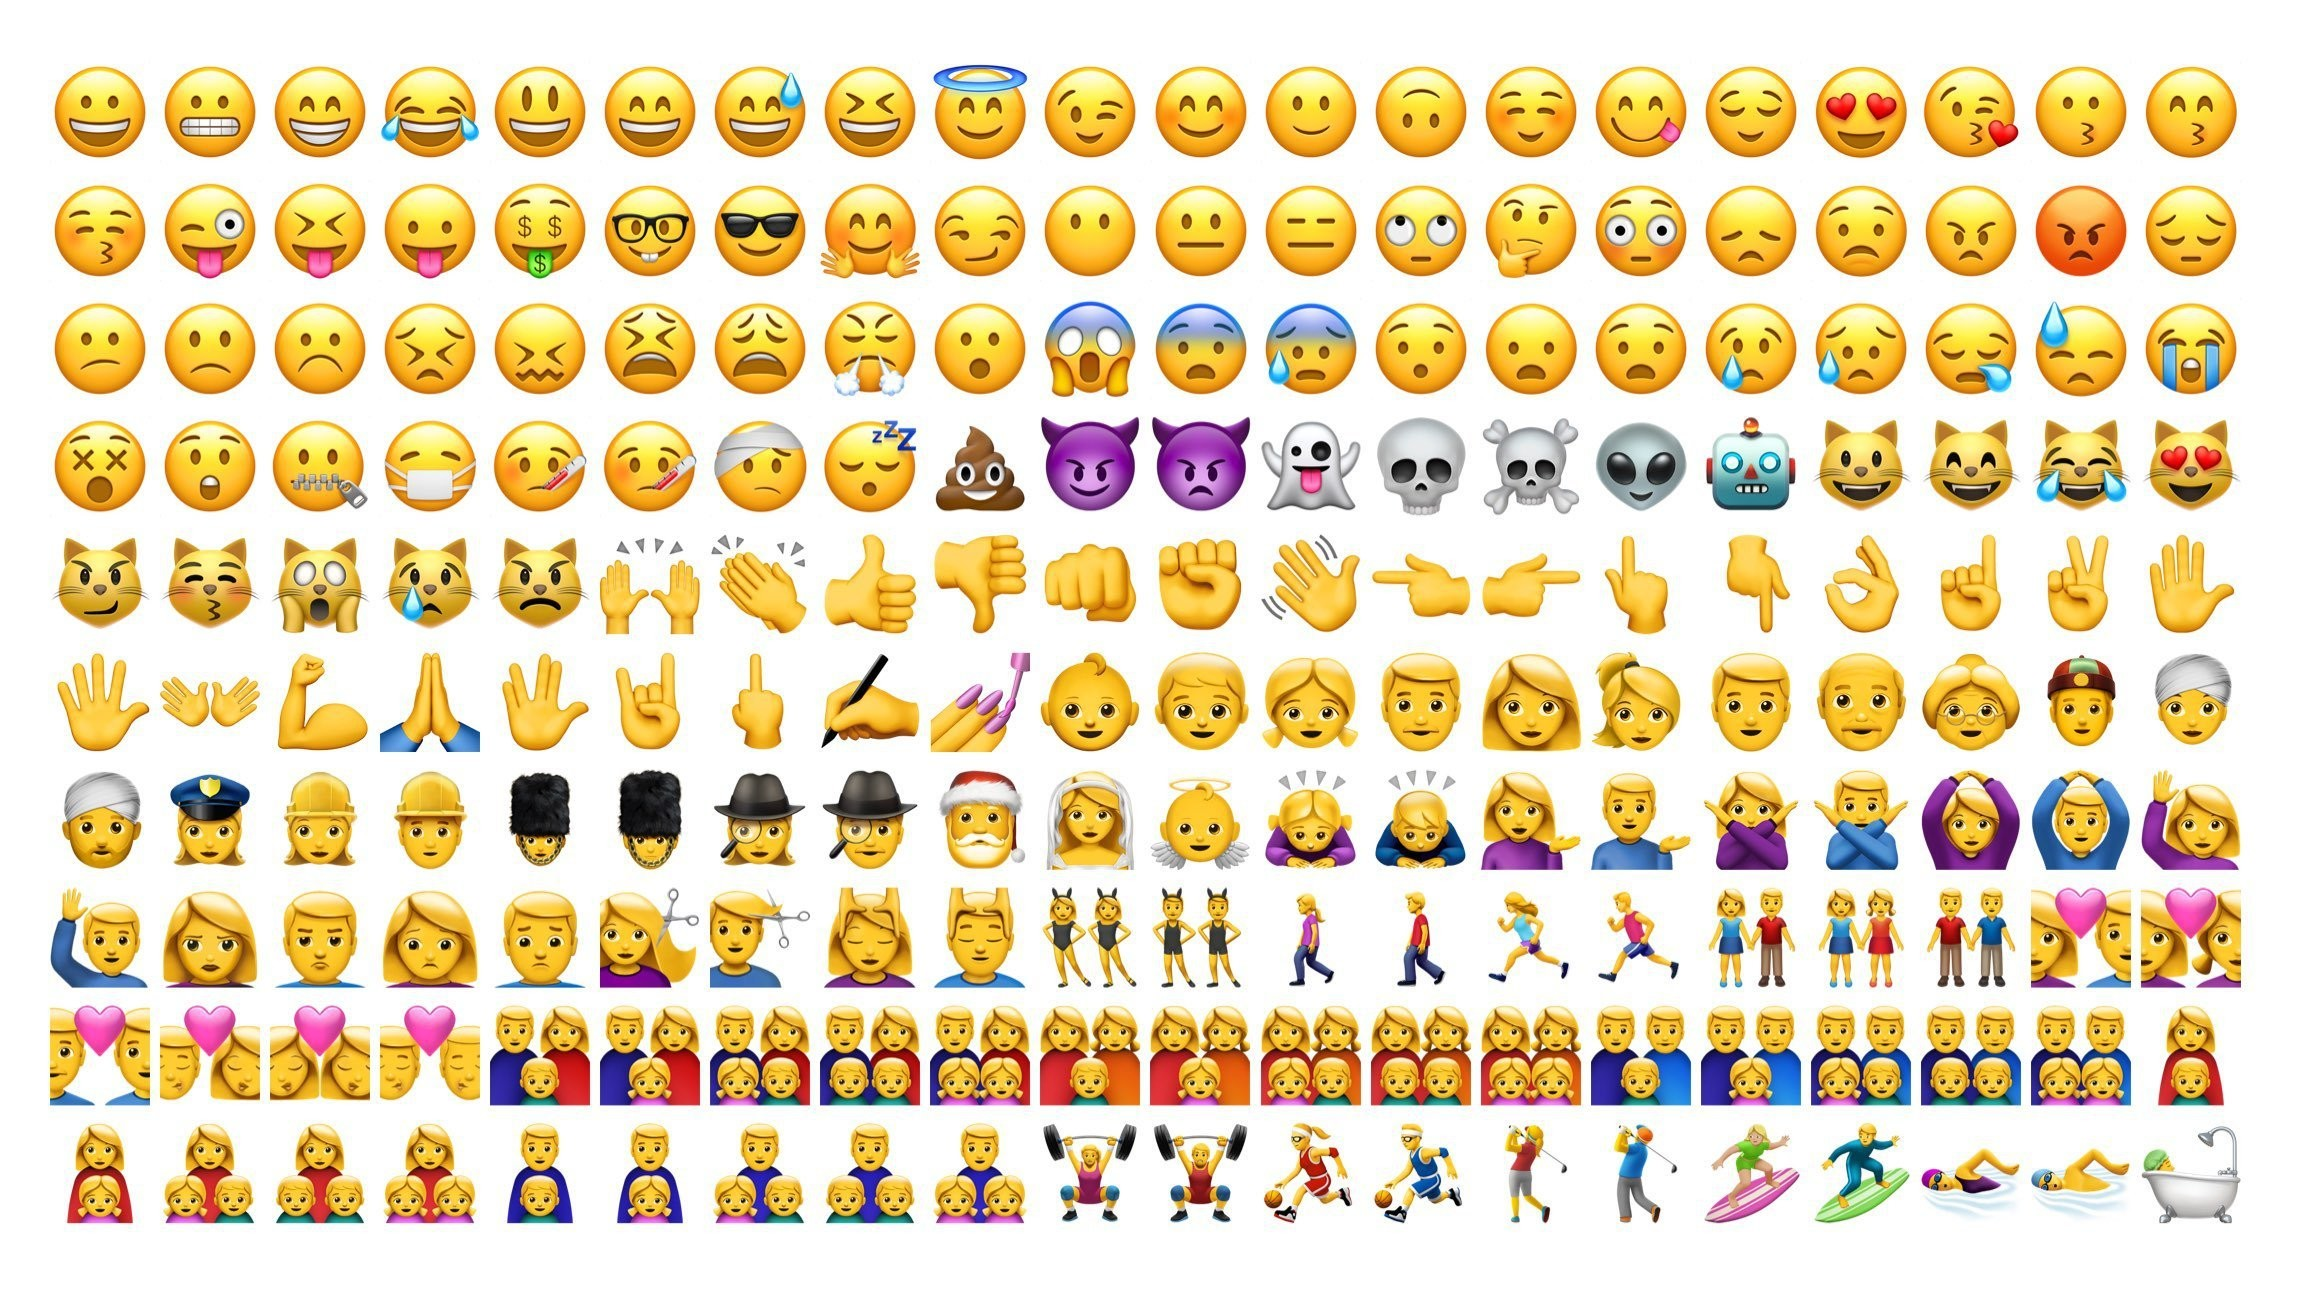 The Poo Emoji Looks Different and Other Important iOS 10 Changes | Inverse